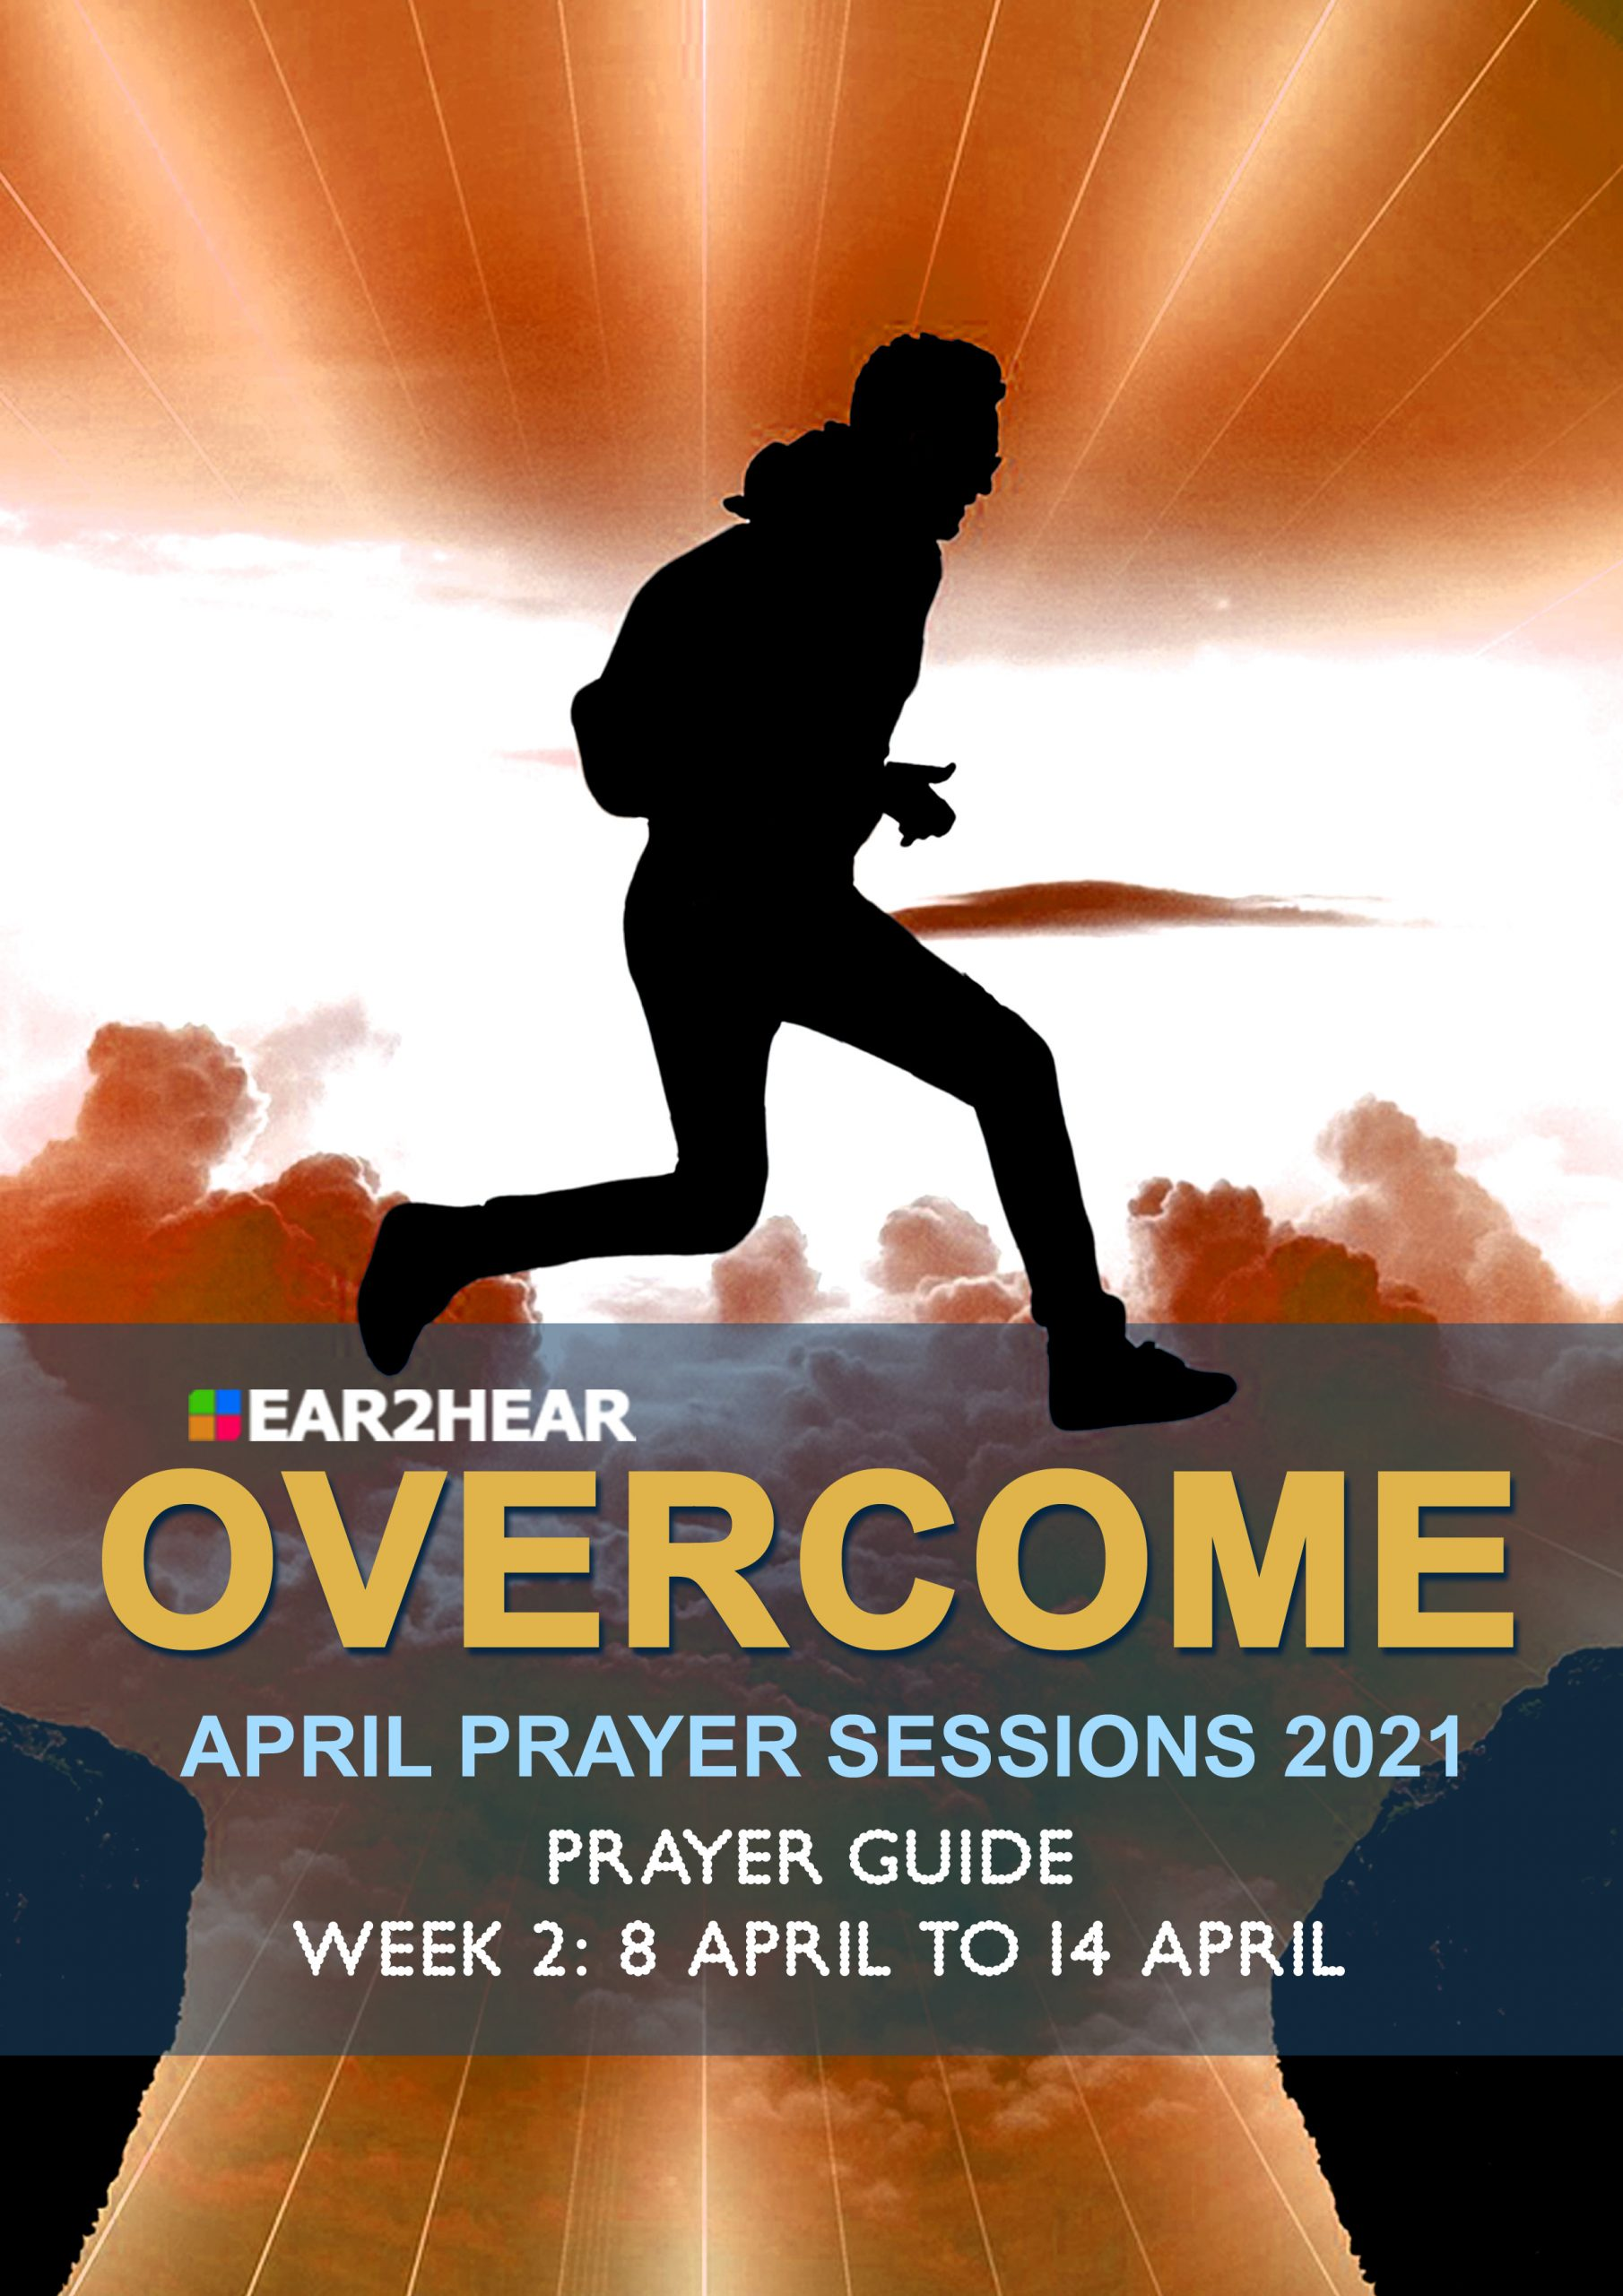 Click / press on image to download week 2  of the prayer guide